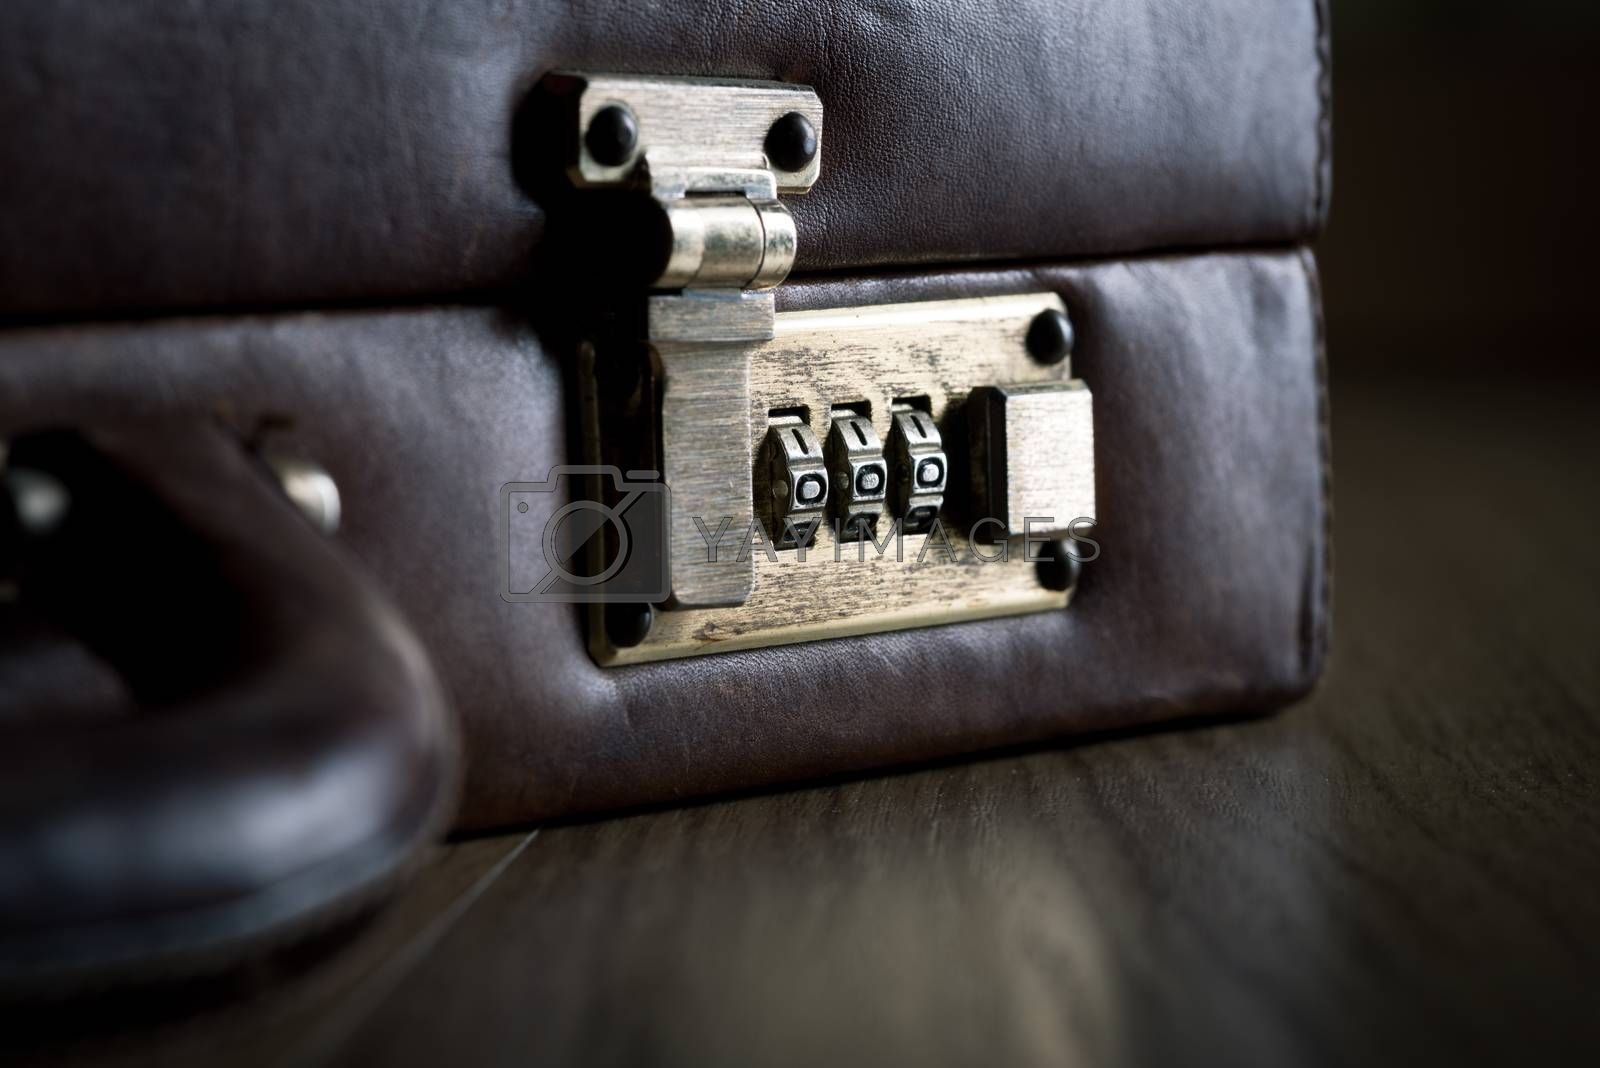 Leather briefcase lock and handle close-up on dark hardwood floor.